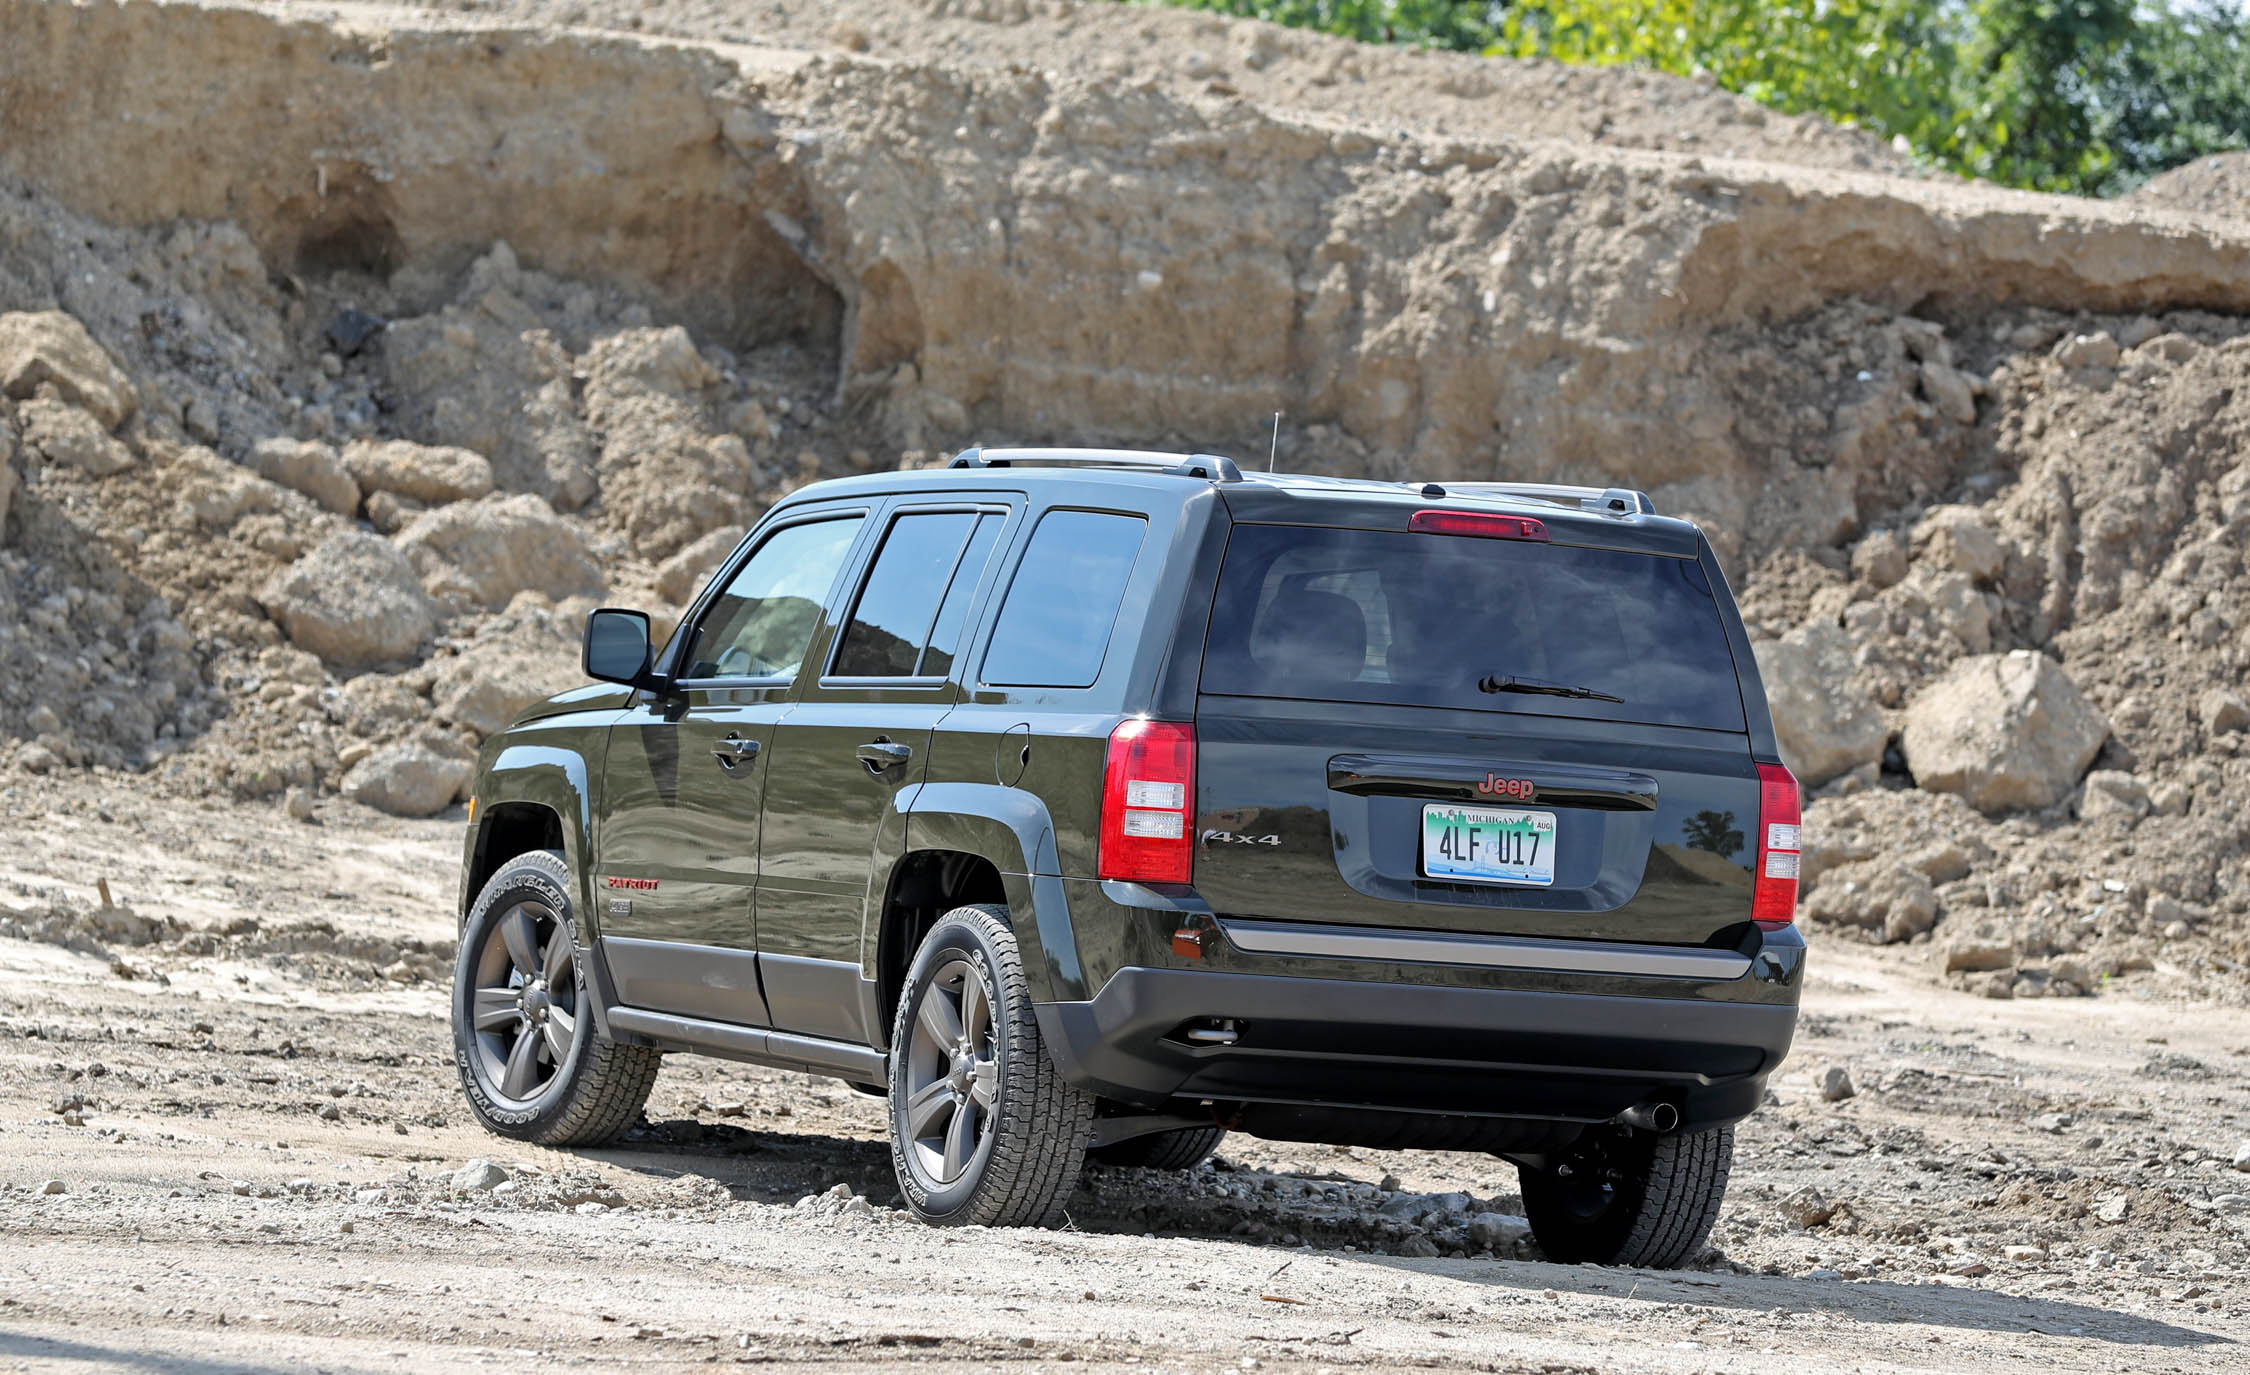 2016 Jeep Patriot Exterior Rear And Side (Photo 6 of 27)